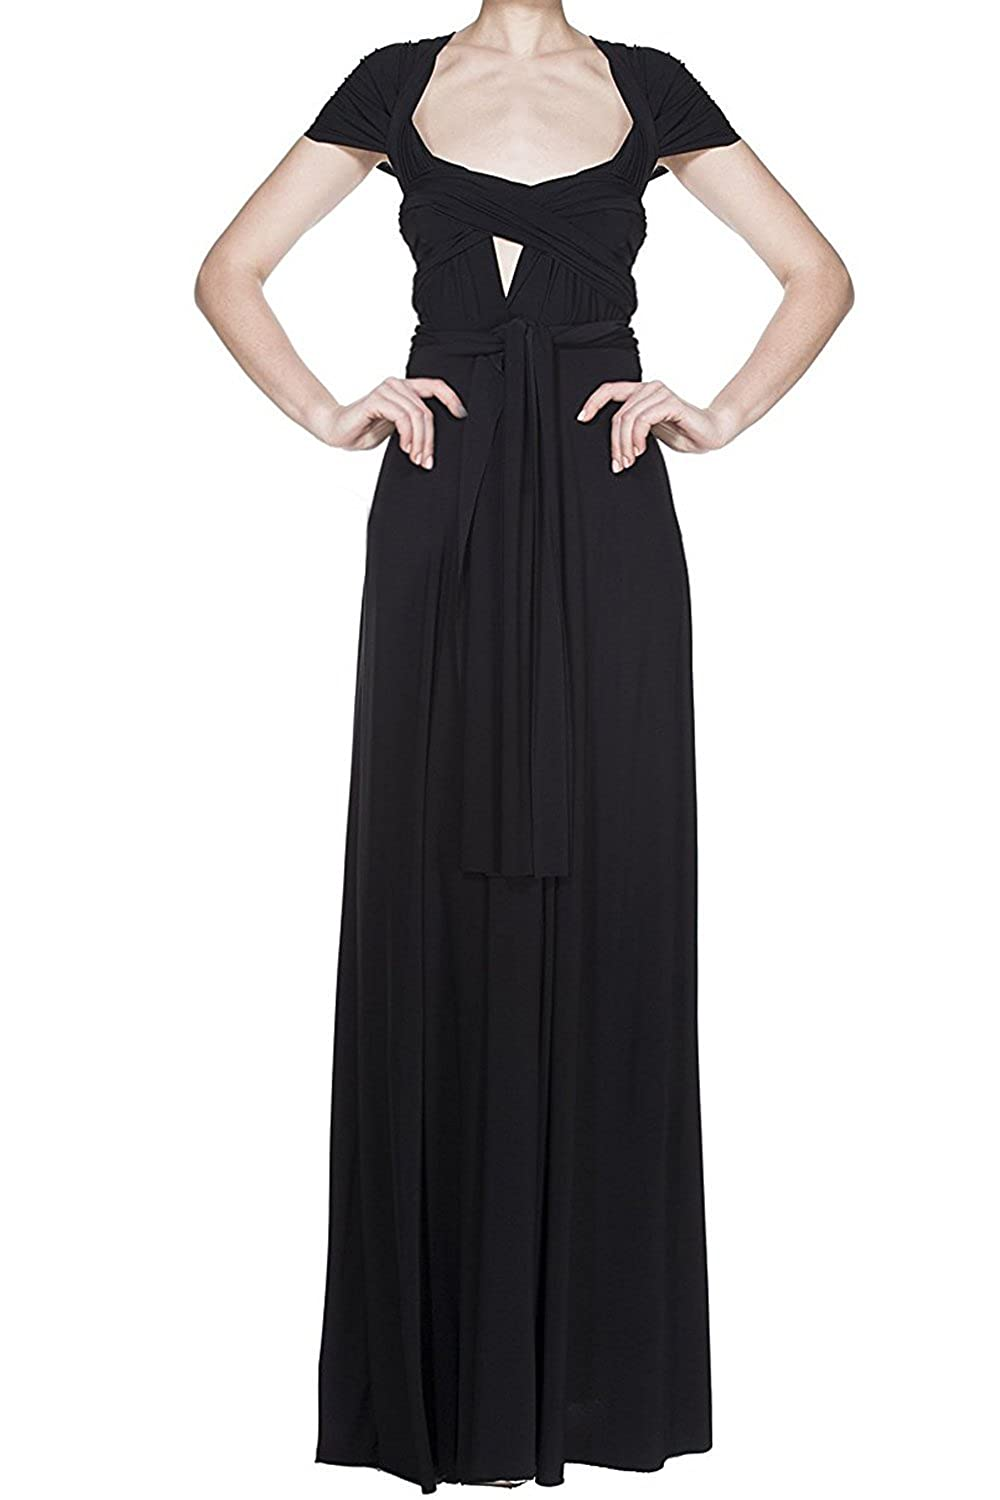 305a69c5001 Womens Bridesmaid Elegant Convertible Transformer Infinity Multi Way Wrap  Cocktail Dress Off Shoulder V Neck Bandage Long Maxi Dress  Amazon.co.uk   Clothing